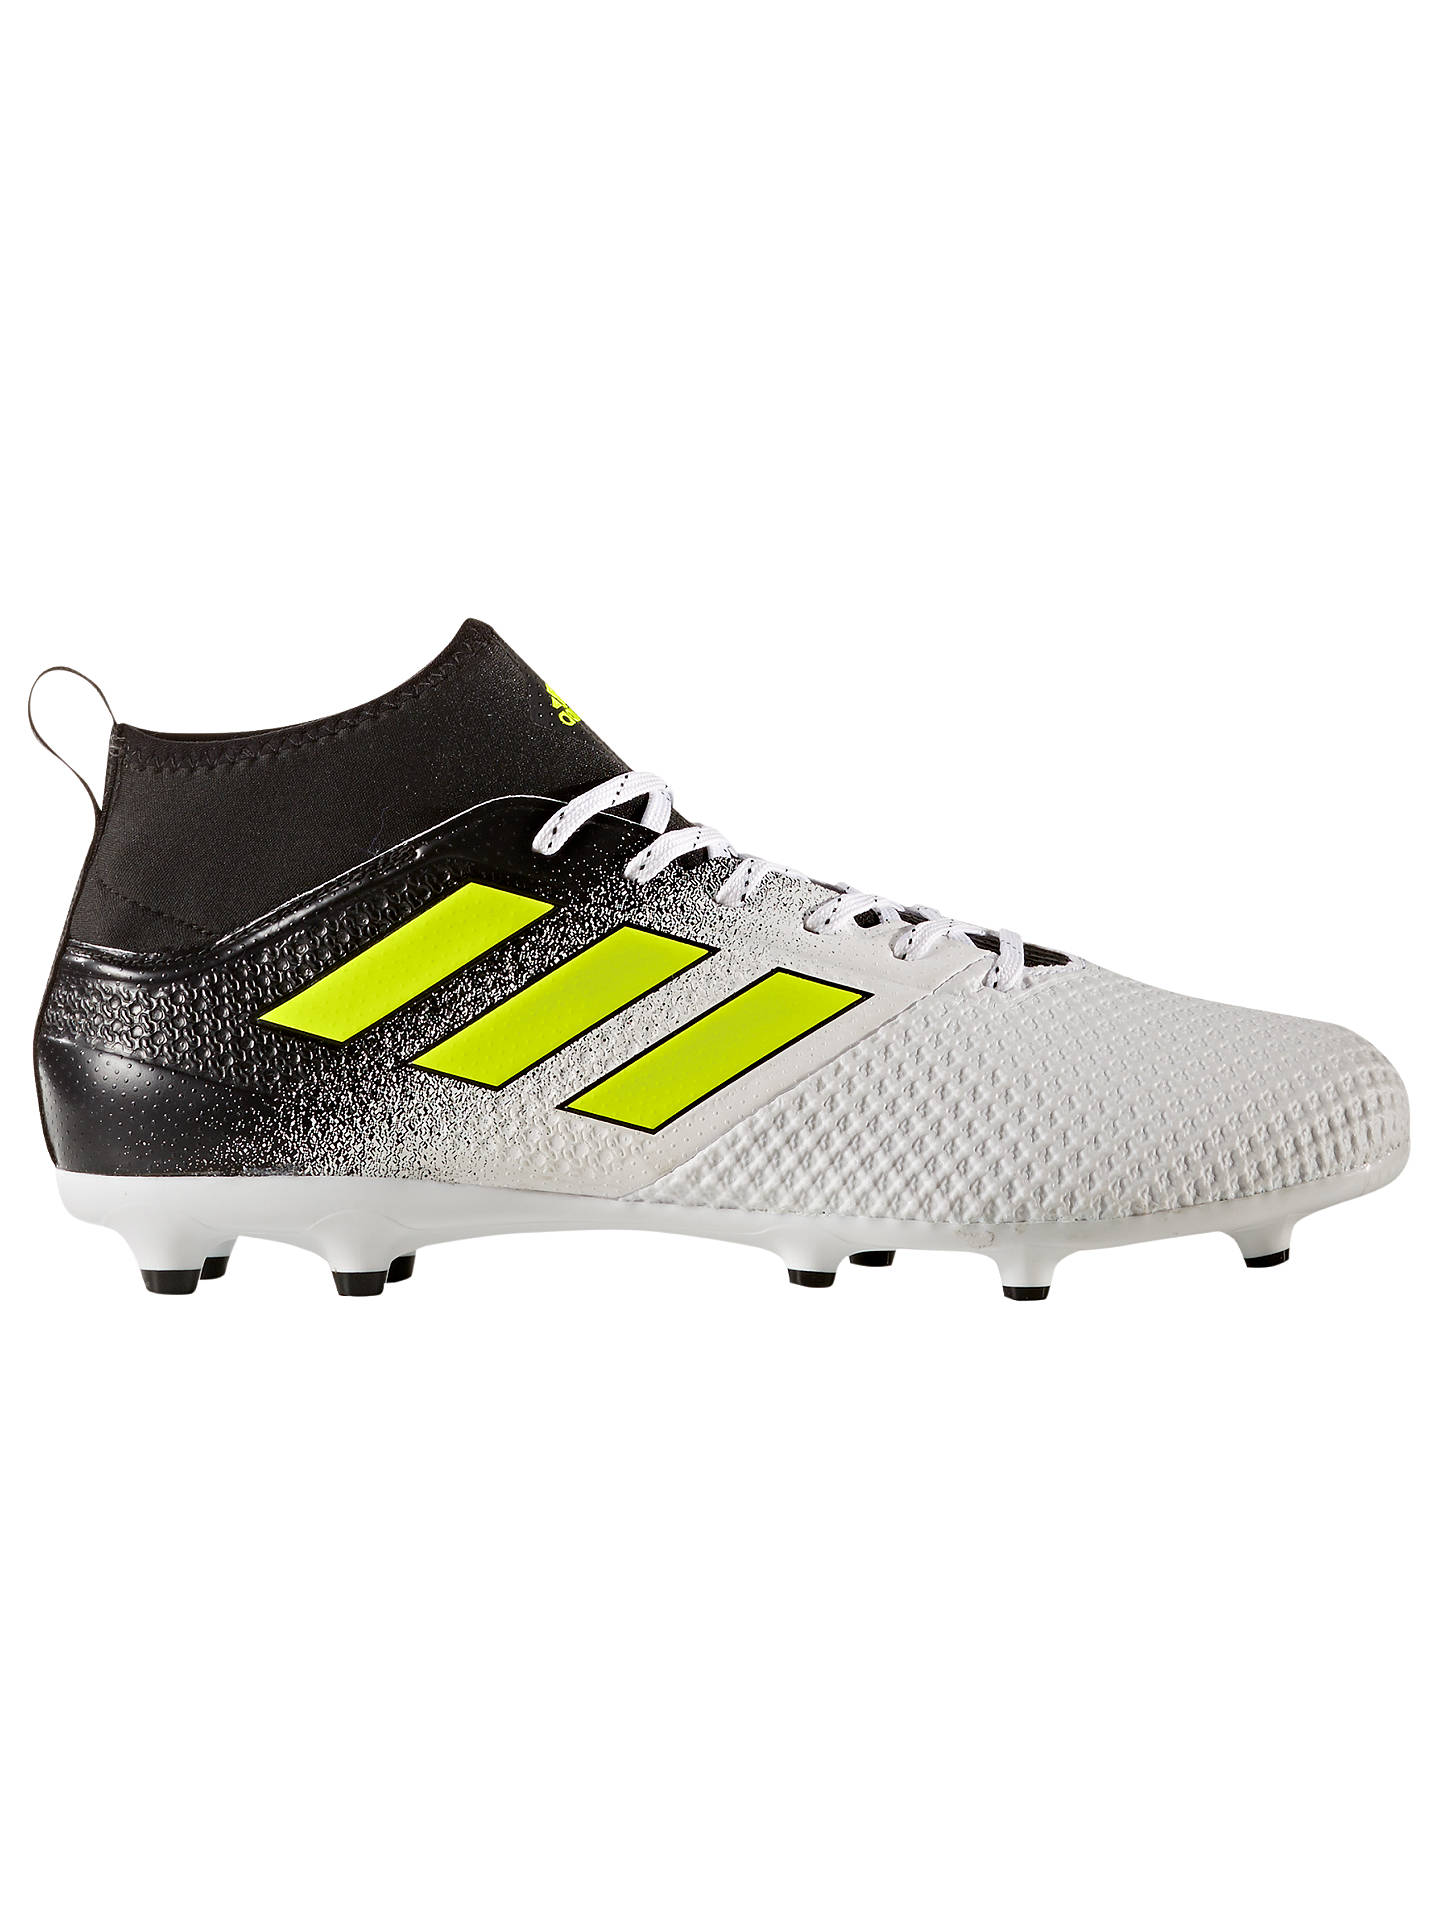 84d853b502e96 adidas Ace 17.3 Primemesh AG Men's Firm Ground Football Boots, White ...